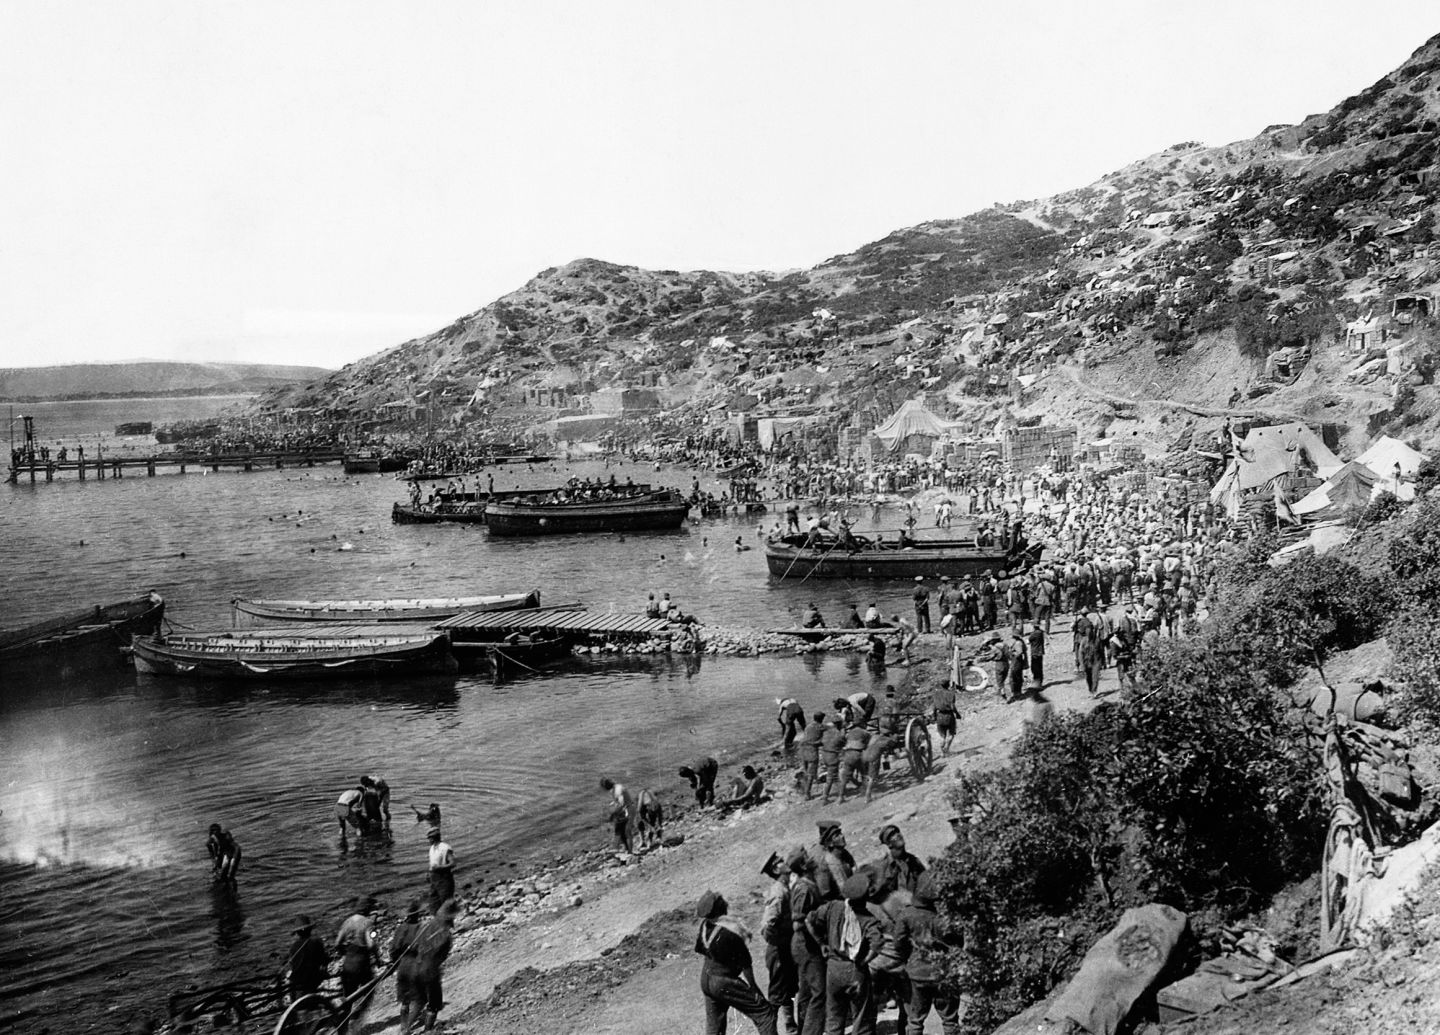 a history of the campaign at gallipoli in world war i In retrospect, the history of gallipoli became one of the great tragedies of world war i apologists for the gallipoli campaign have long tried to boast of what could have been, with a heavy emphasis on 'if only'.